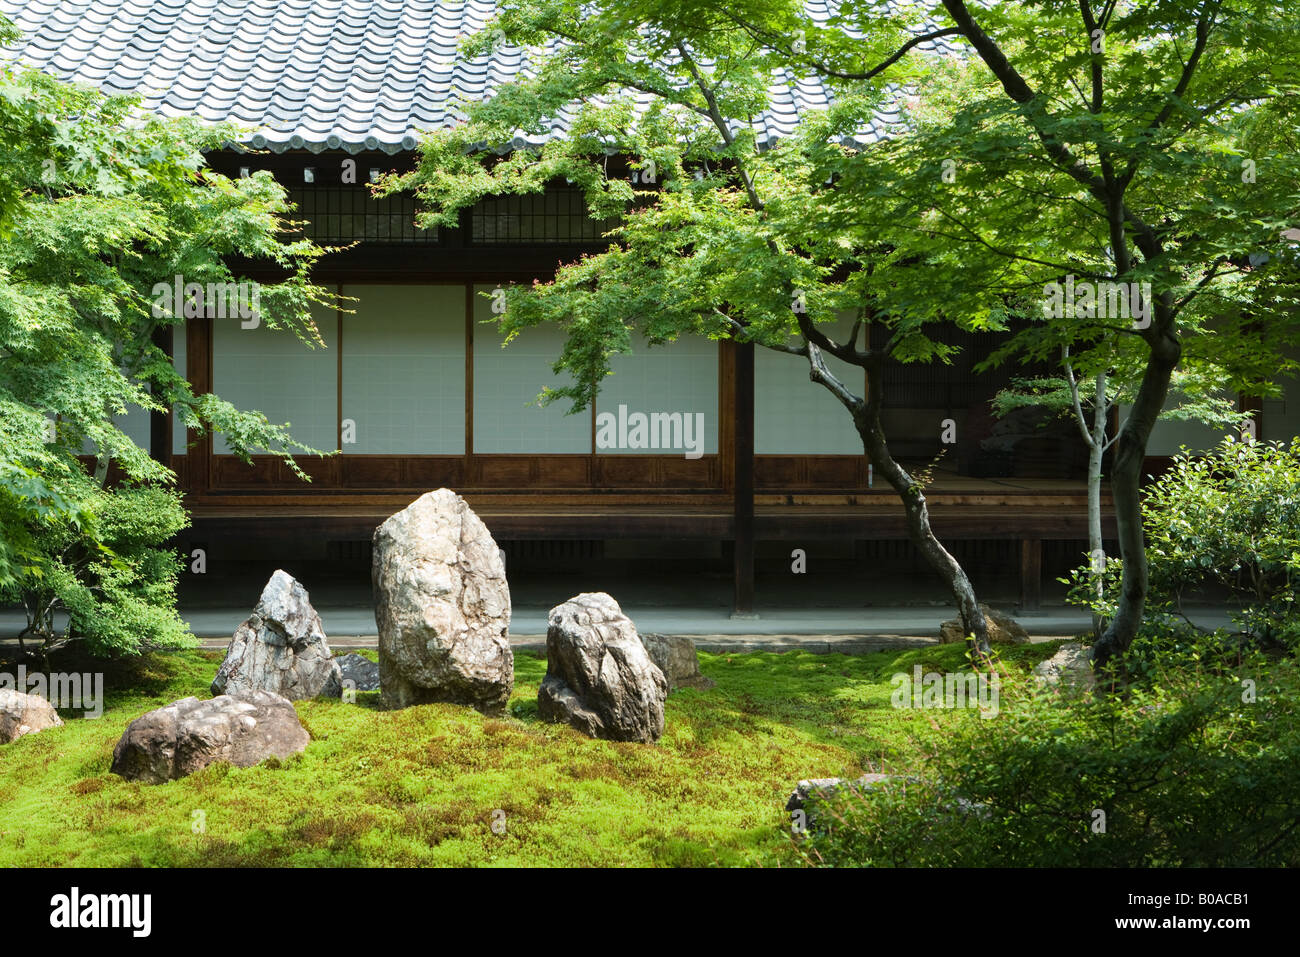 Japanese rock garden, traditional building in background - Stock Image